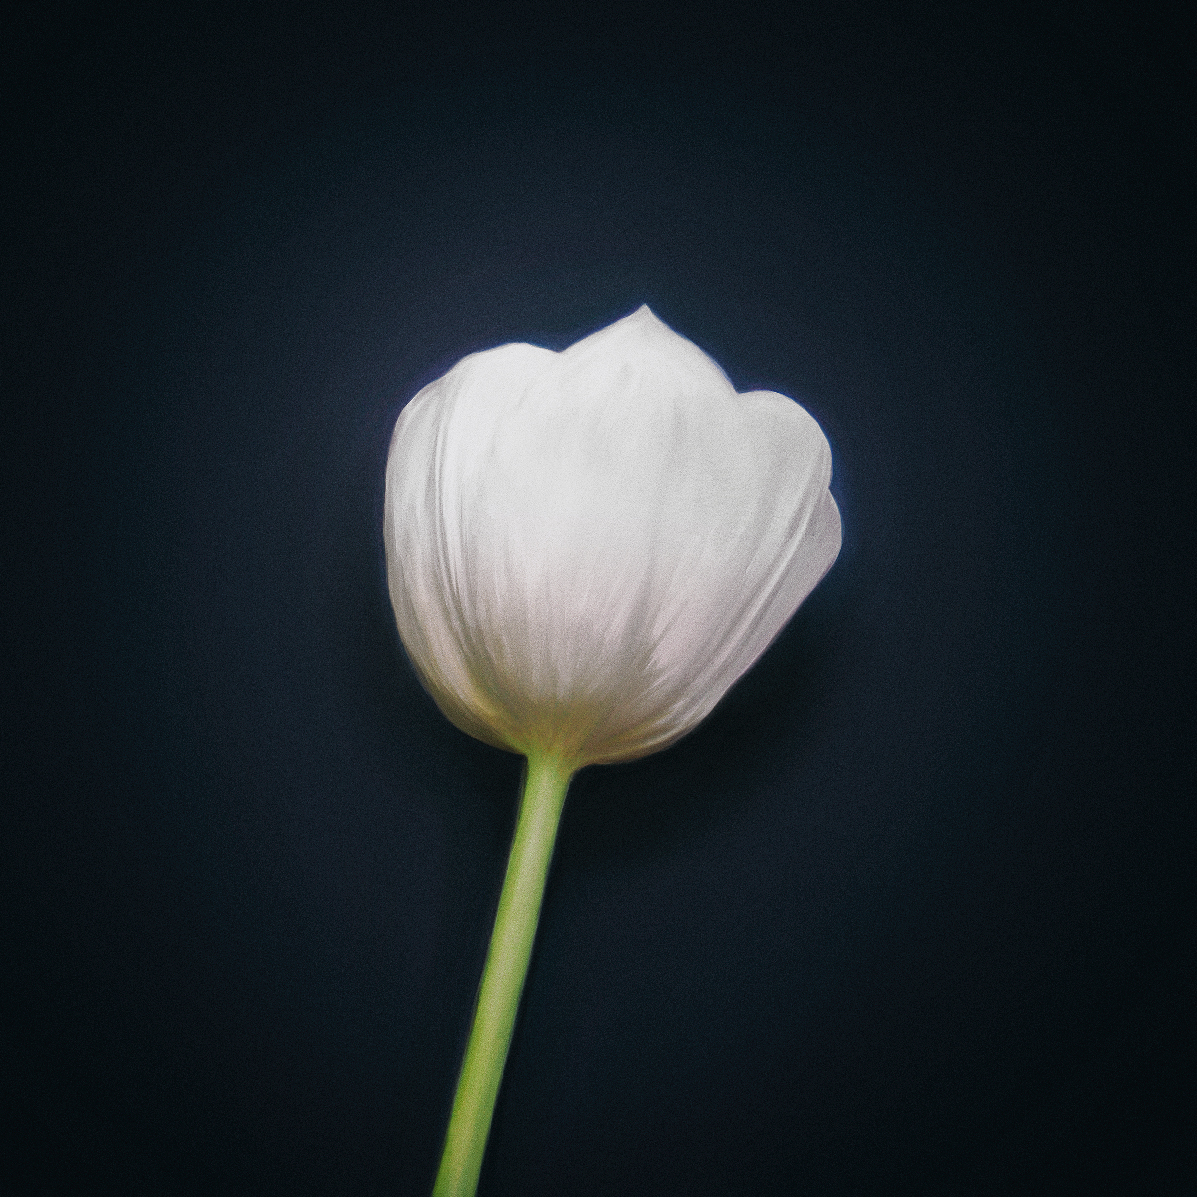 Tulip by Herm the Younger